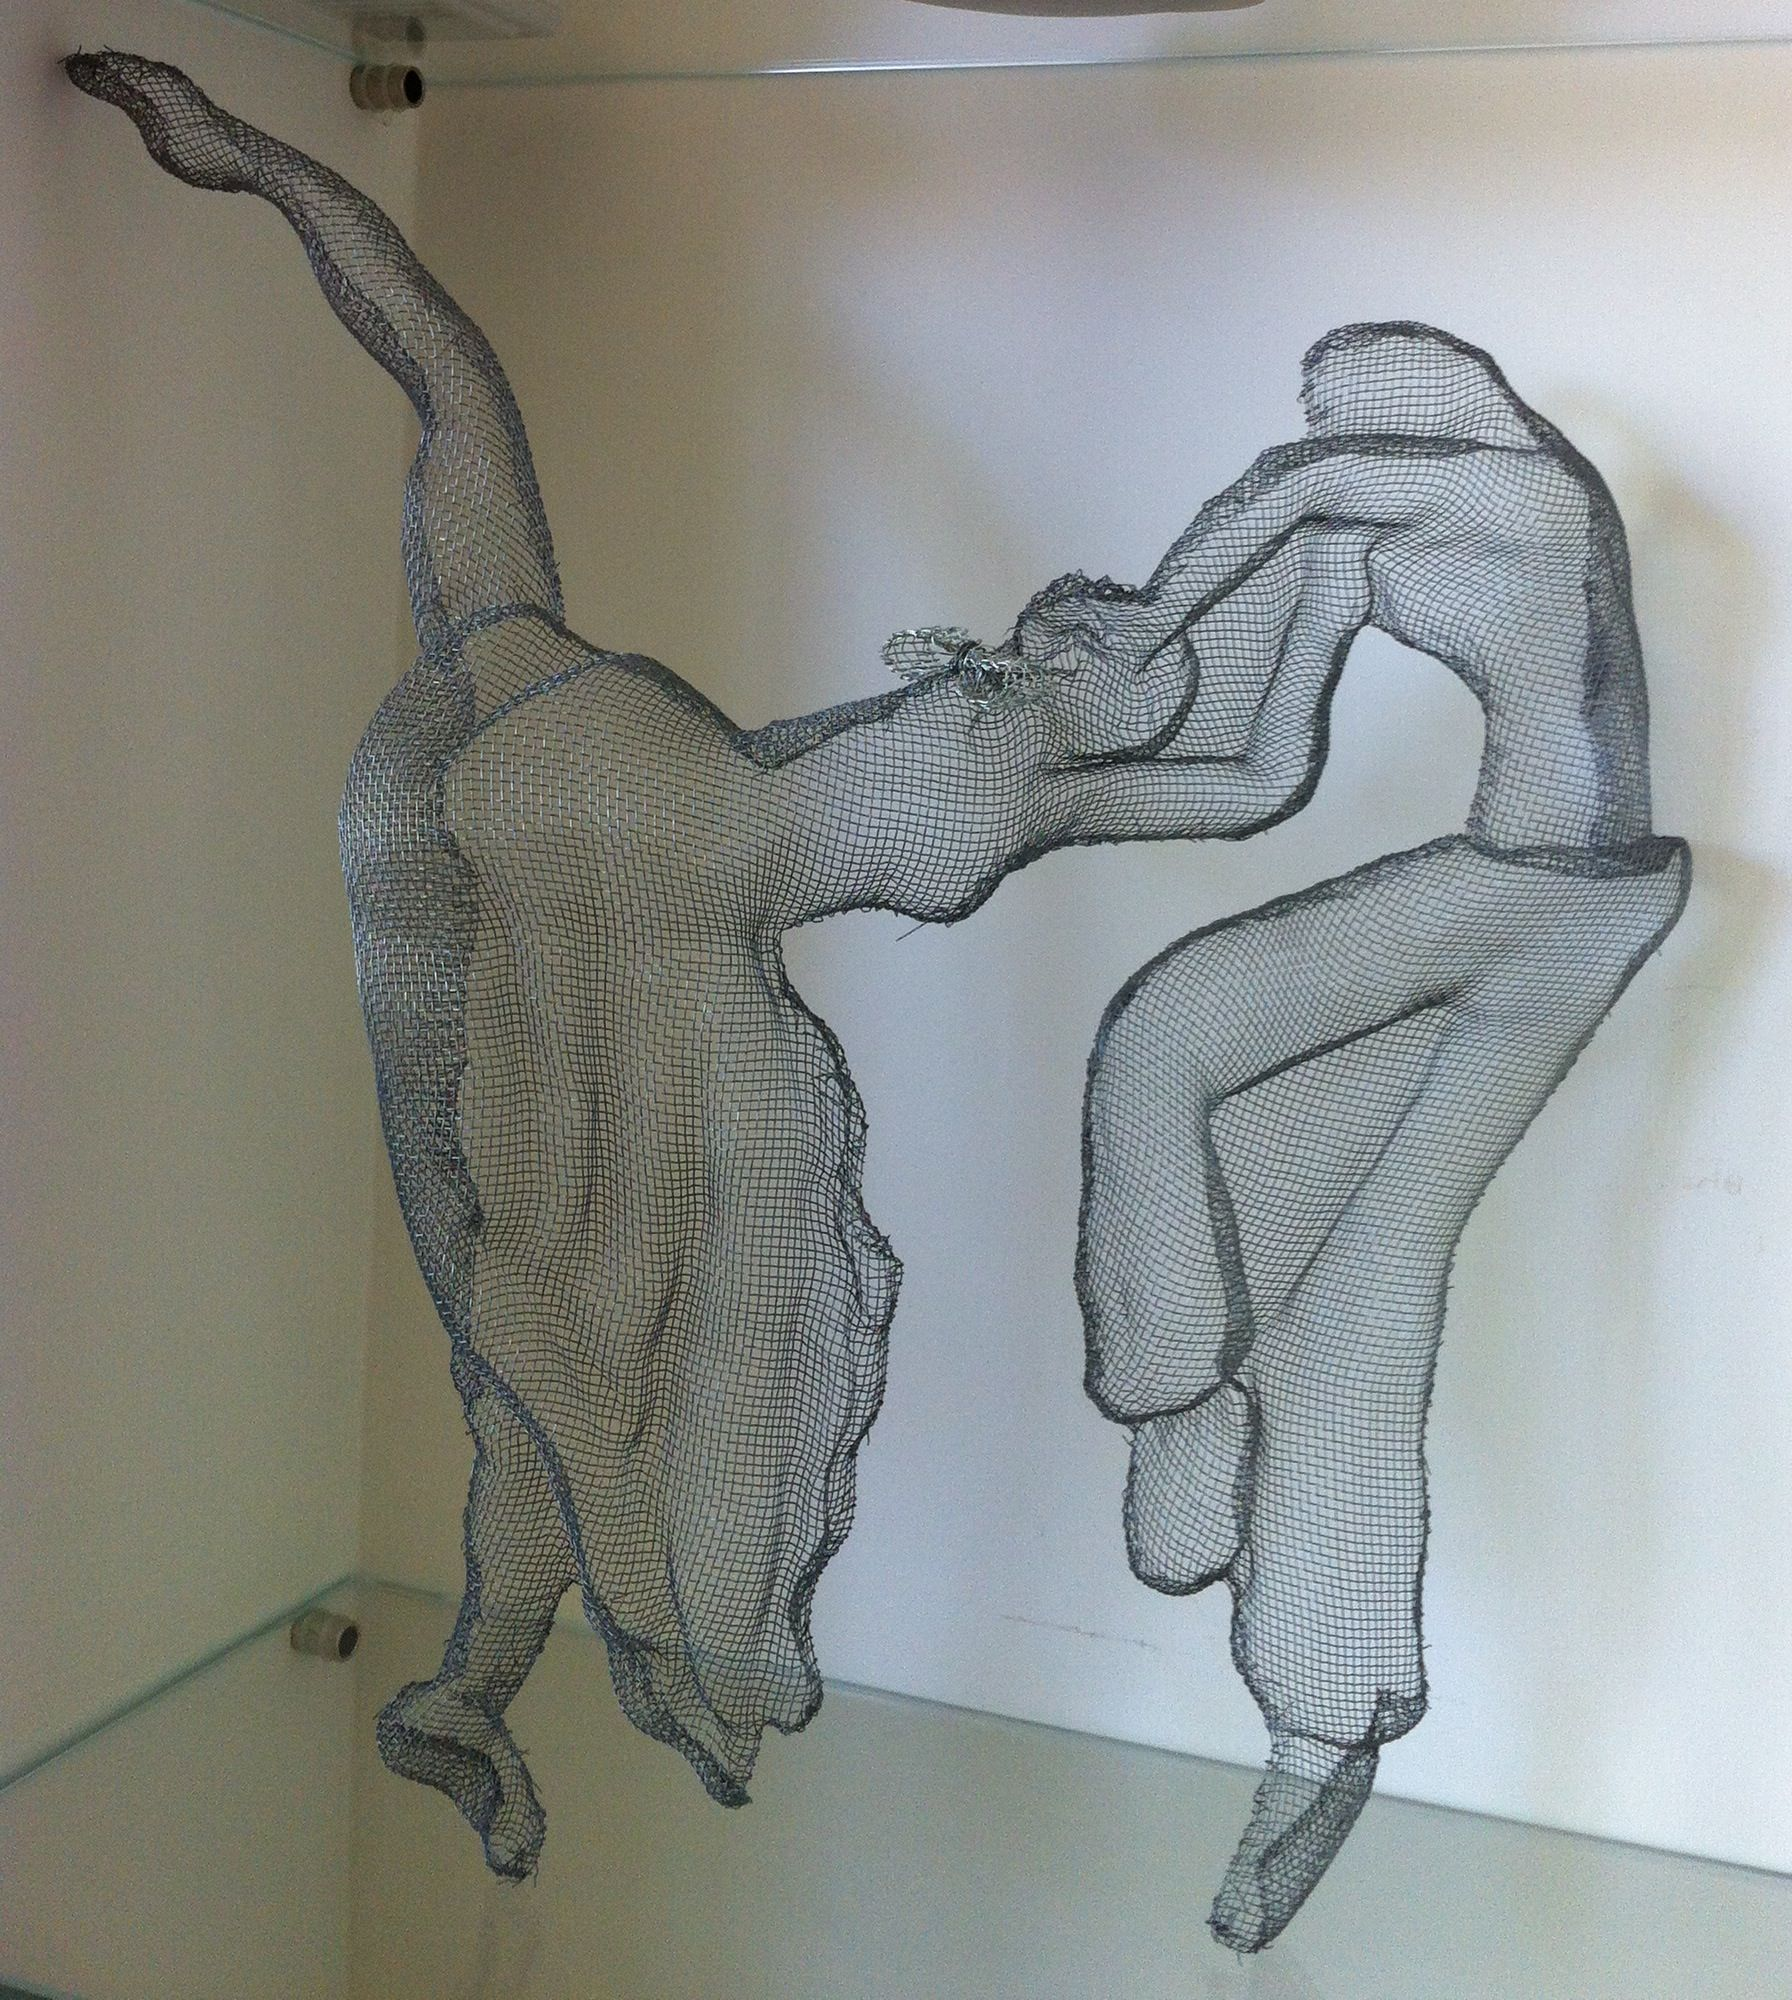 wire mesh sculpture by Orna Feliks, dancers | Wire Mesh Sculpture by ...